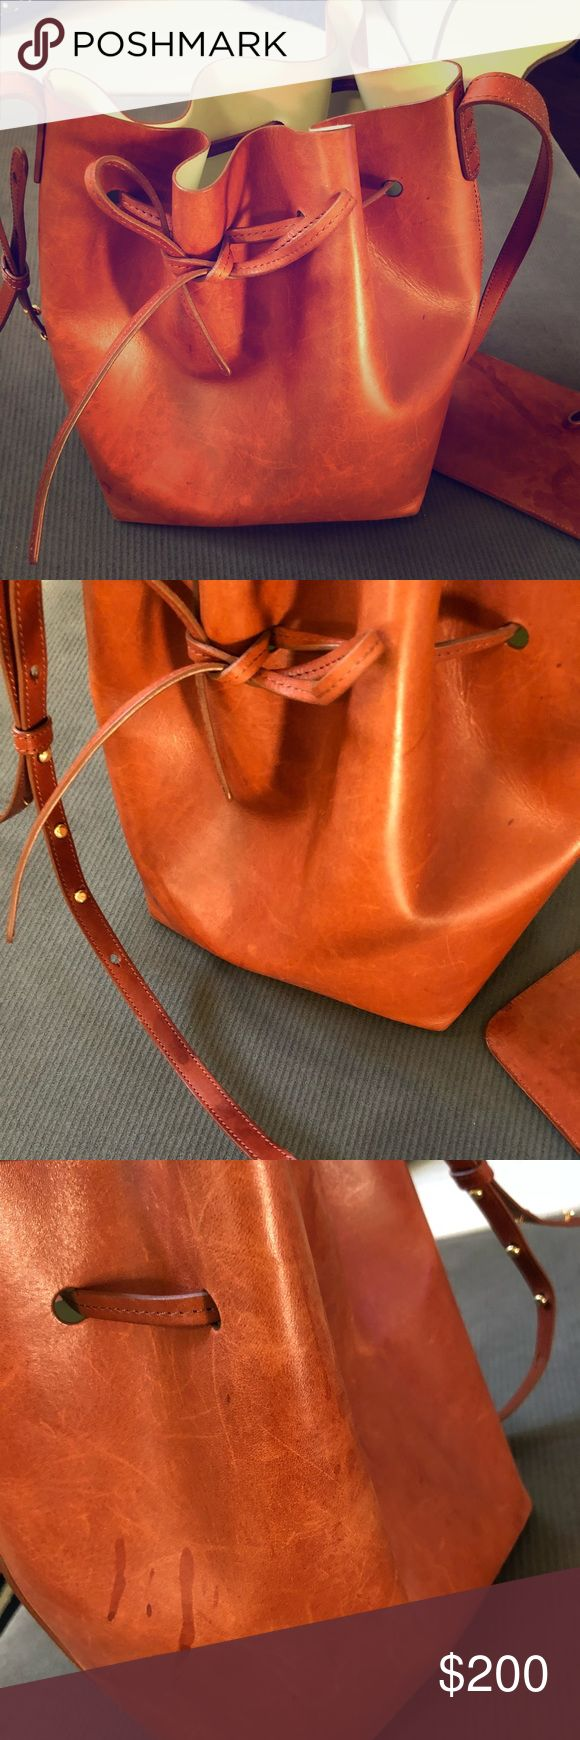 Authentic Mansur Gavriel Large Bucket Bag Large Mansur Gavriel Bucket Bag. Has water damage as can be seen from pictures. Inside is in good condition- front of bag is in good condition. Color is: Brandy/Cleo Mansur Gavriel Bags Shoulder Bags